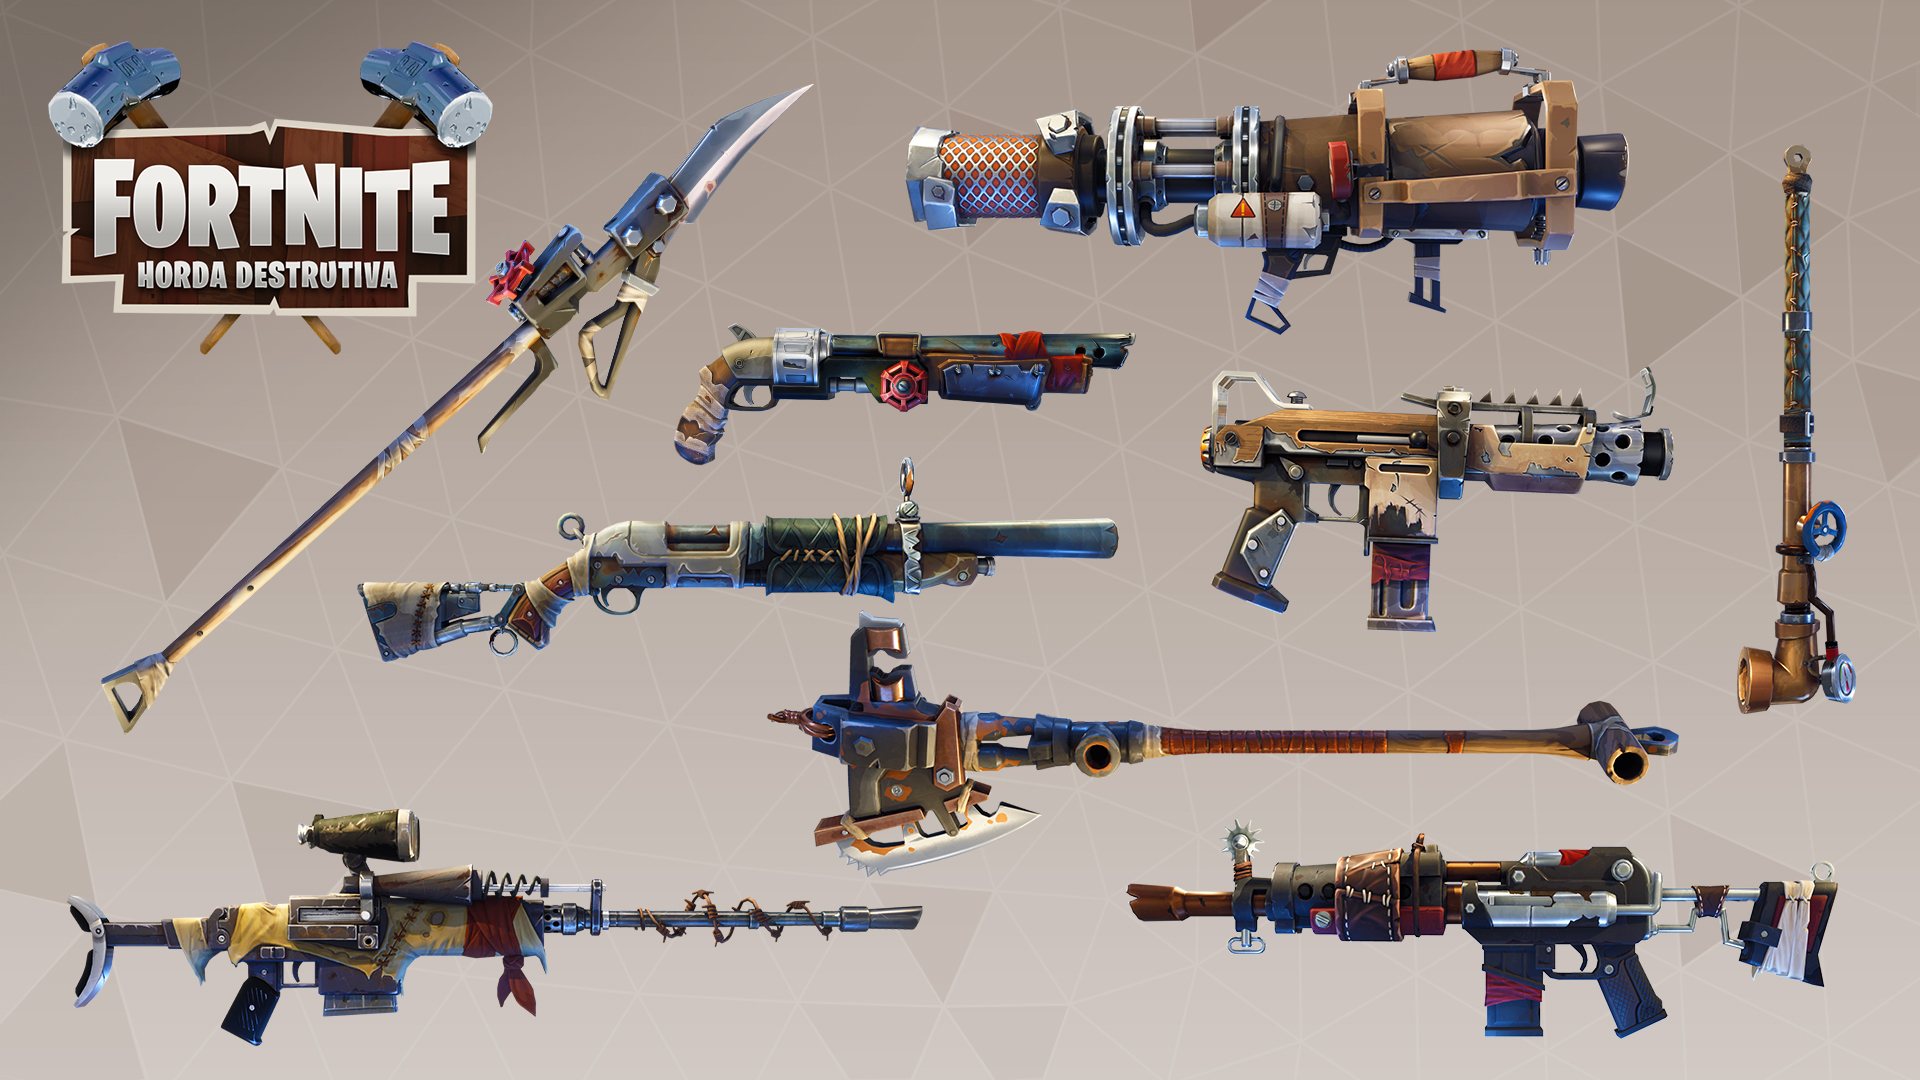 Fortnite%2Fblog%2Fea-1-7-patch-notes%2FBR_PT-HB-Weapons-1920x1080-cc6ae43492a2ba8b7d30c80a510ecff4f617eb0e